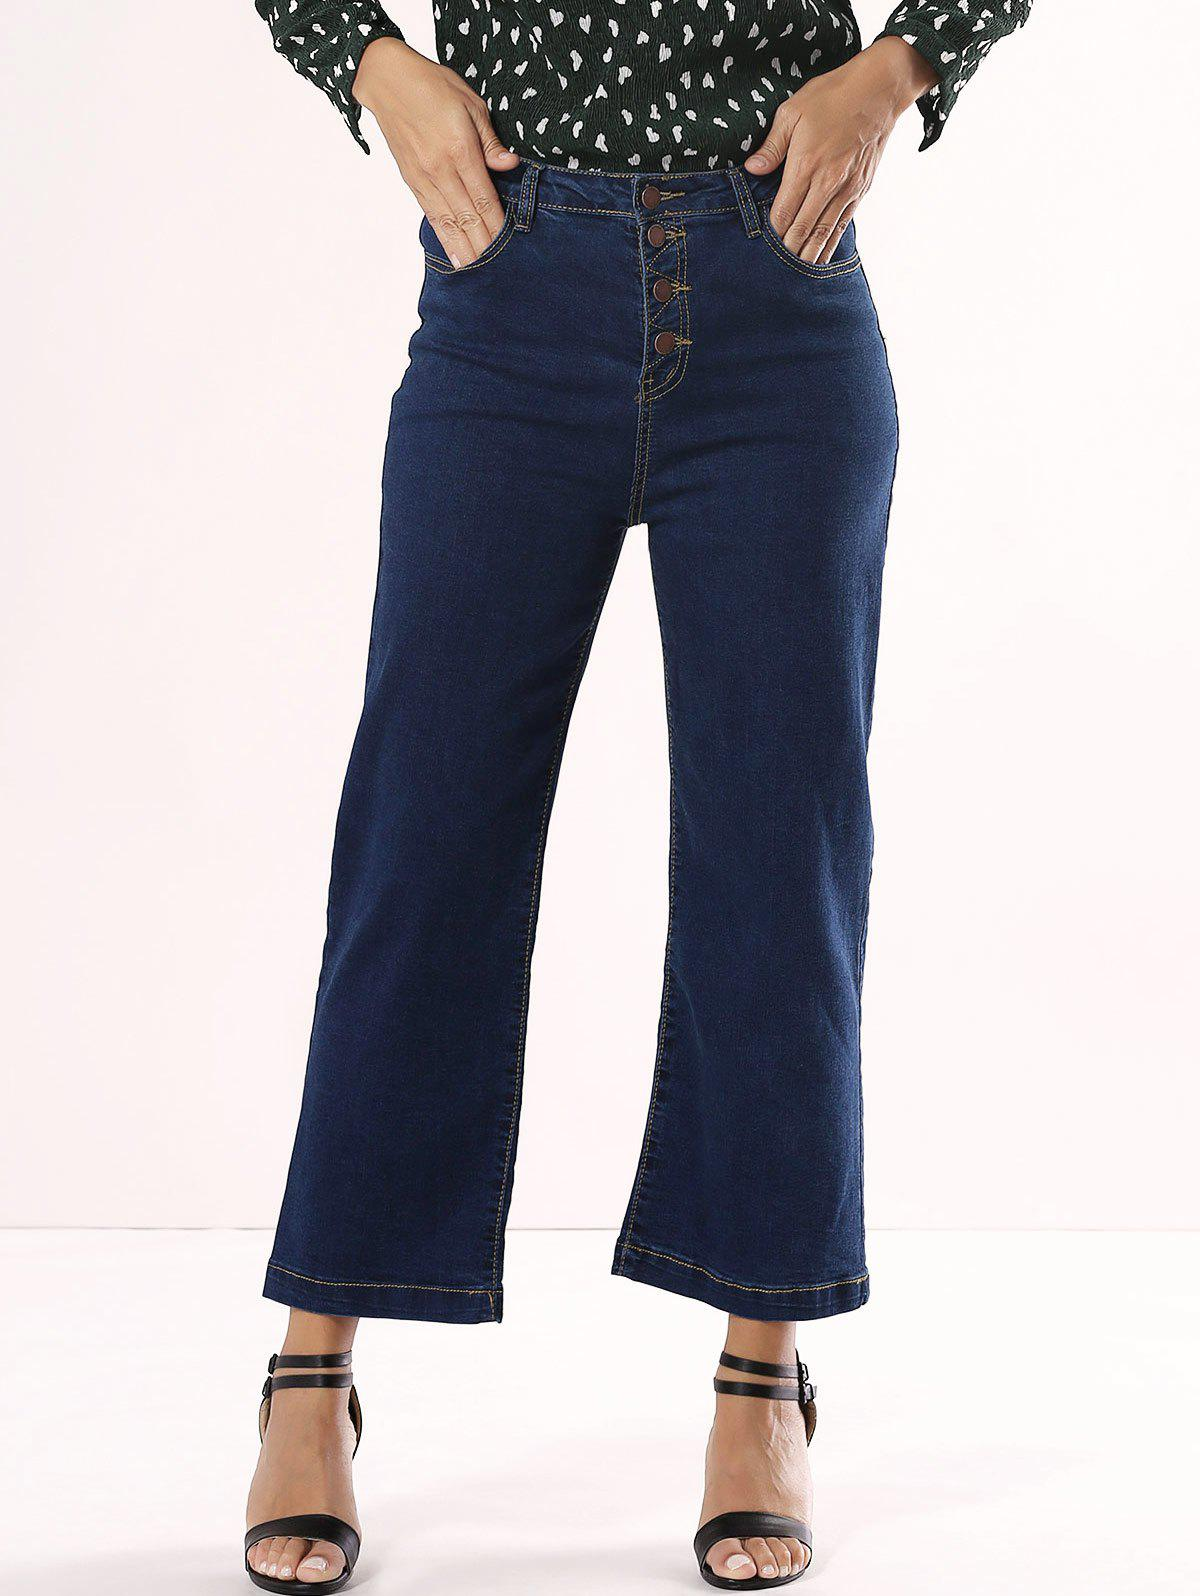 2019 High Waisted Cropped Flare Jeans Rosegal Com